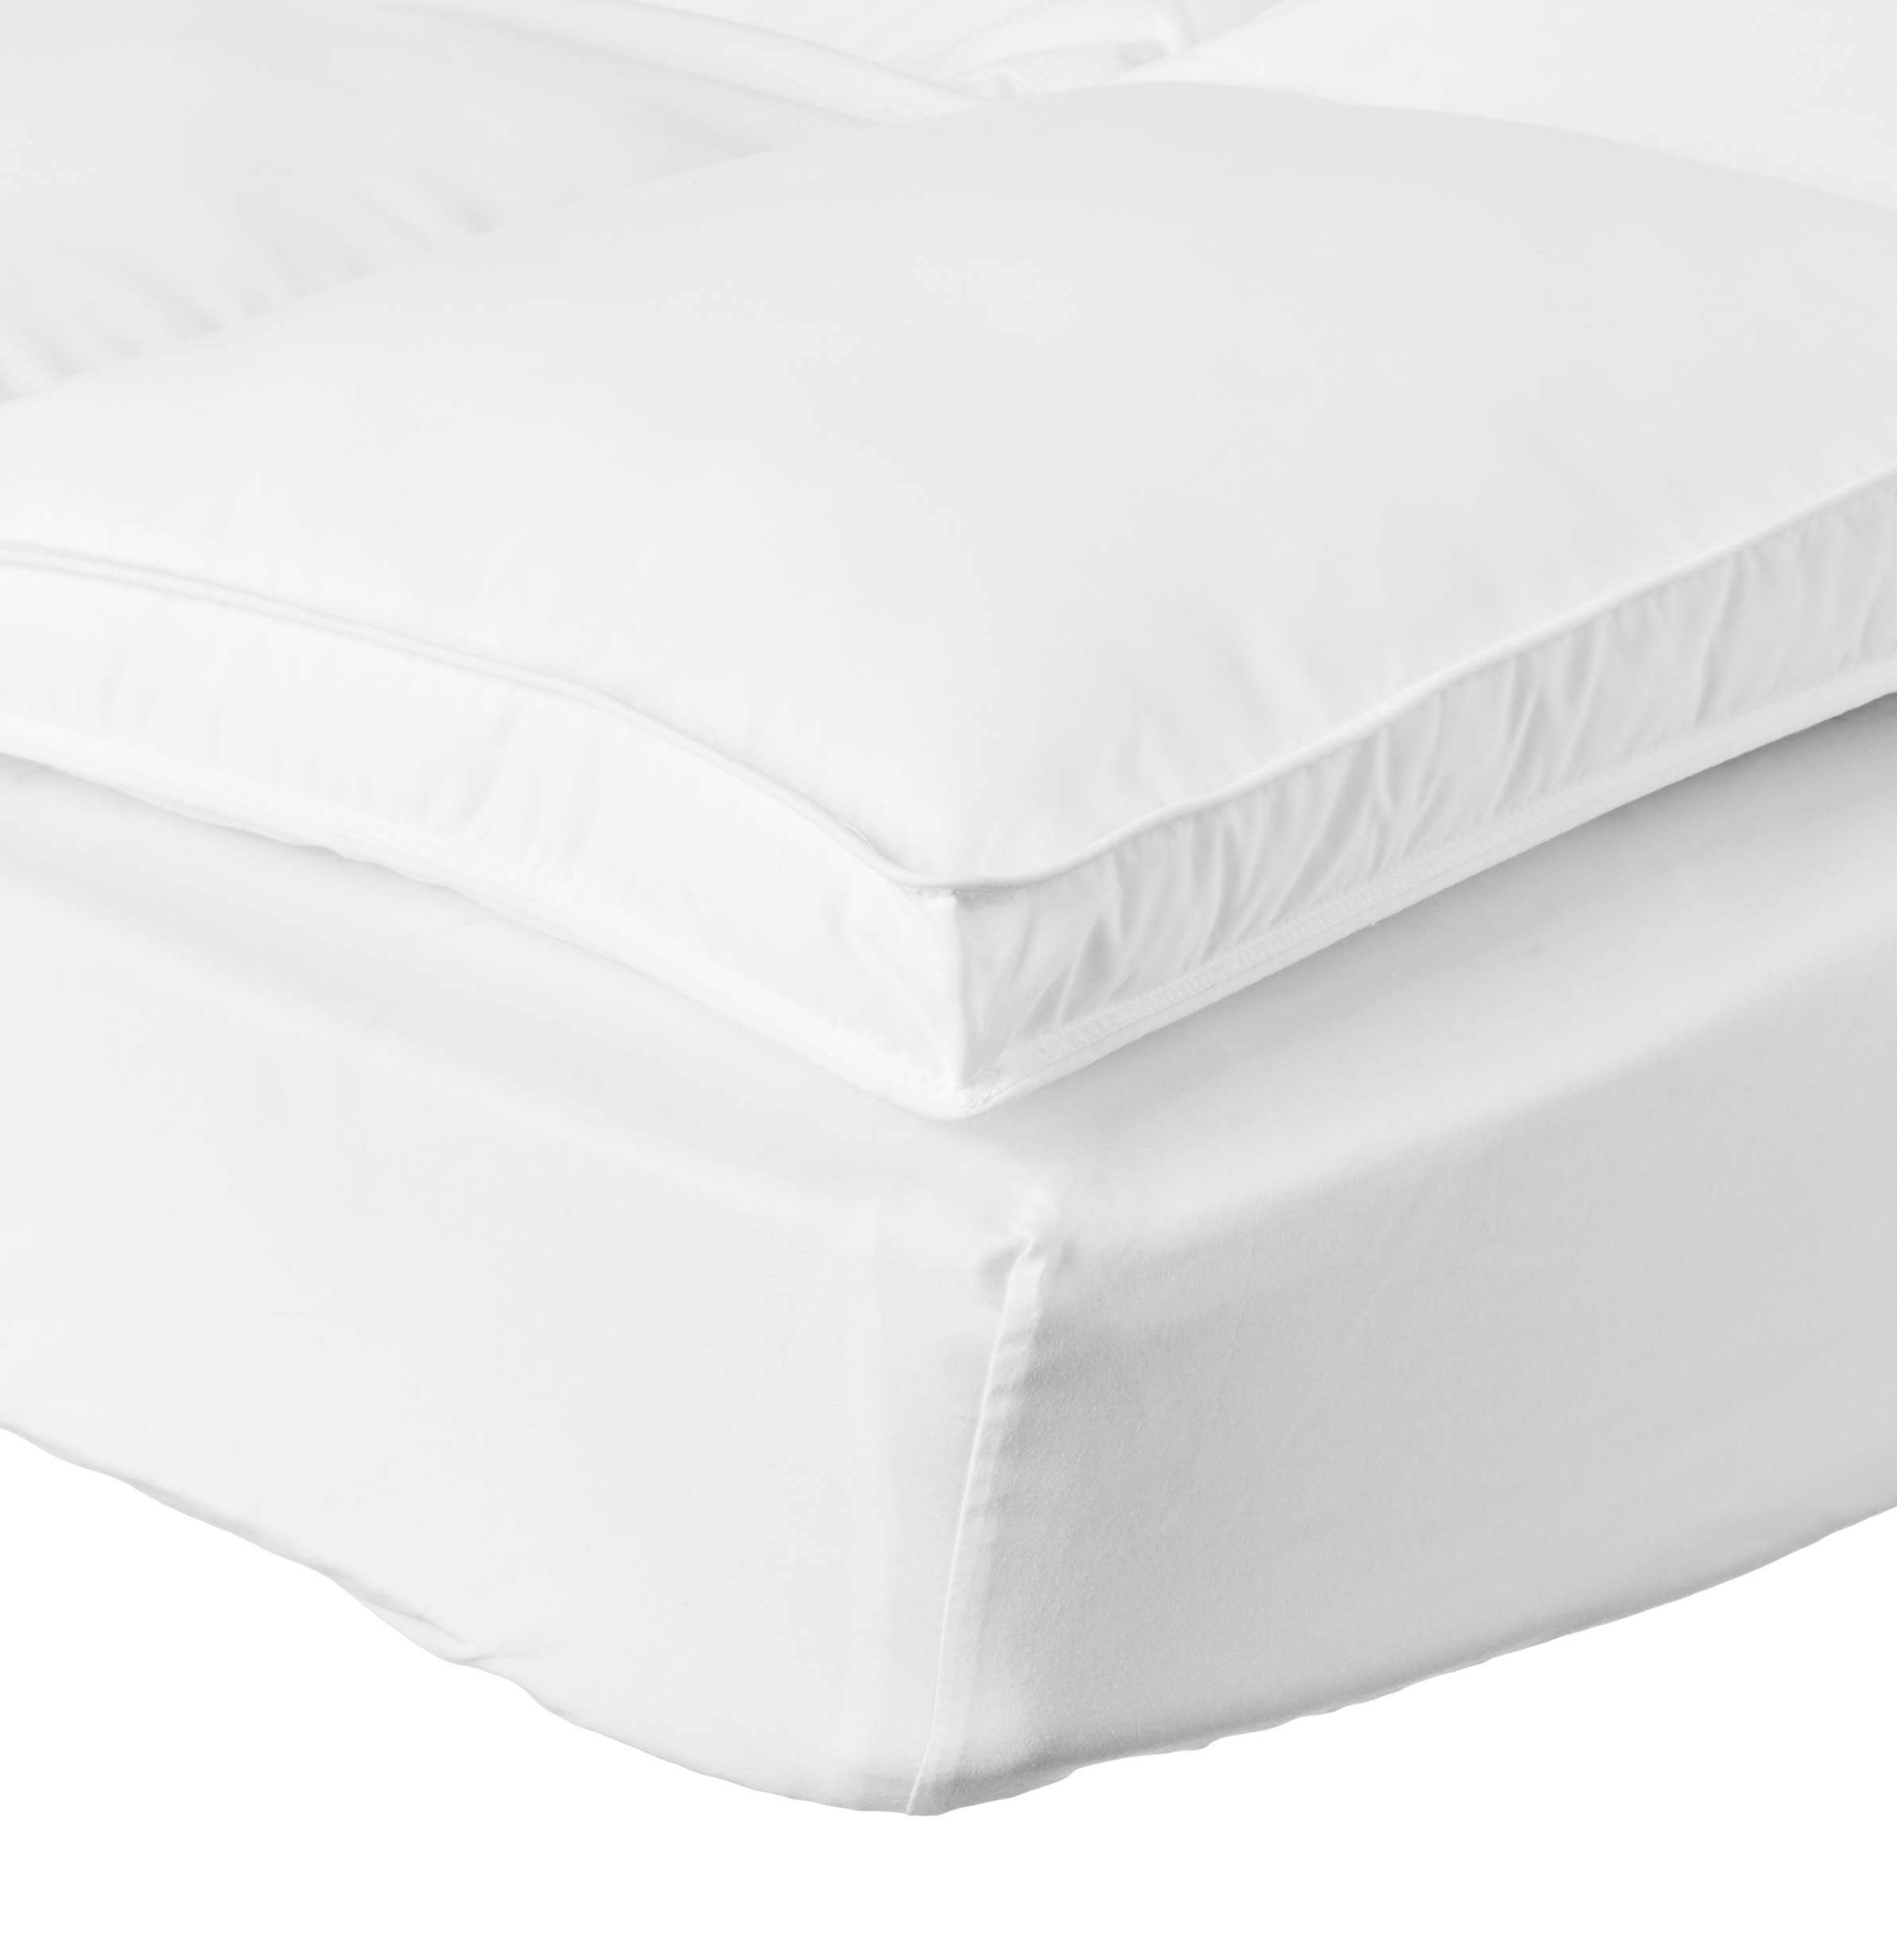 Superior Queen Mattress Topper, Hypoallergenic White Down Alternative Featherbed Mattress Pad - Plush, Overfilled, and 2'' Thick by Superior